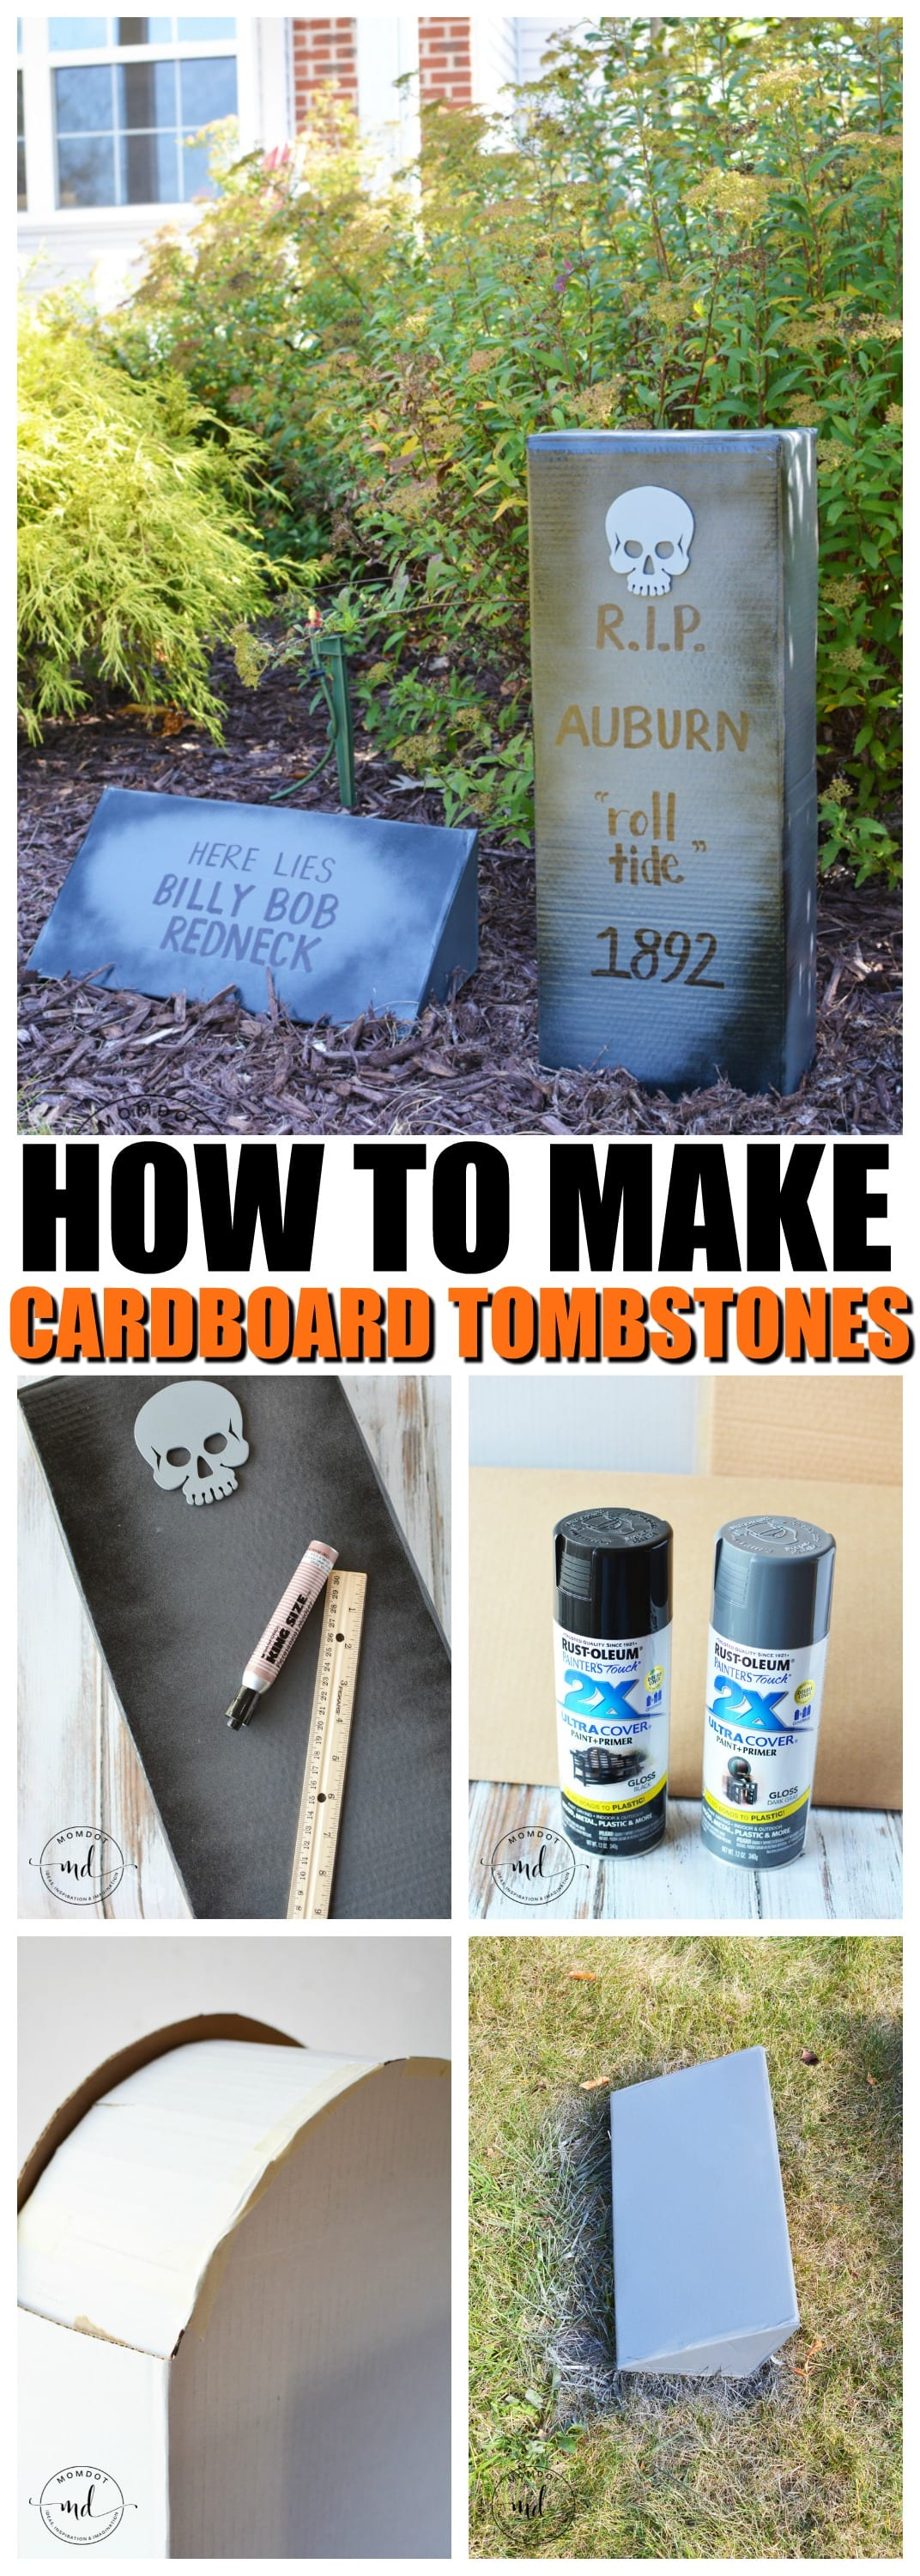 How to Make Cardboard Tombstones - MomDot